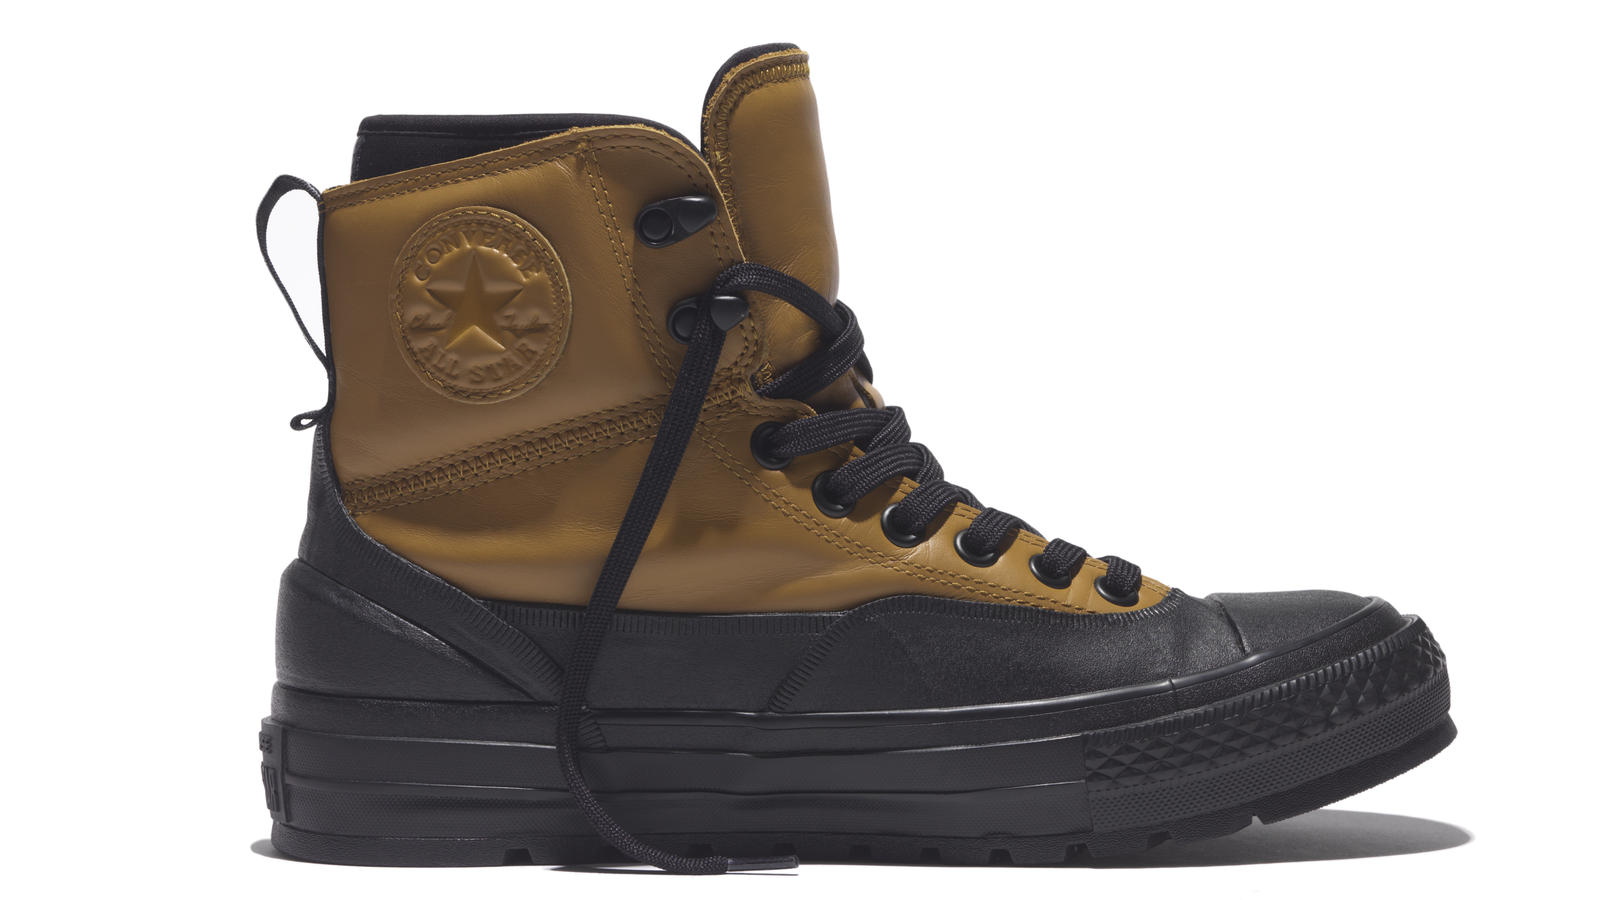 60942dcbbd Converse Debuts New Counter Climate Boots Collection - Nike News